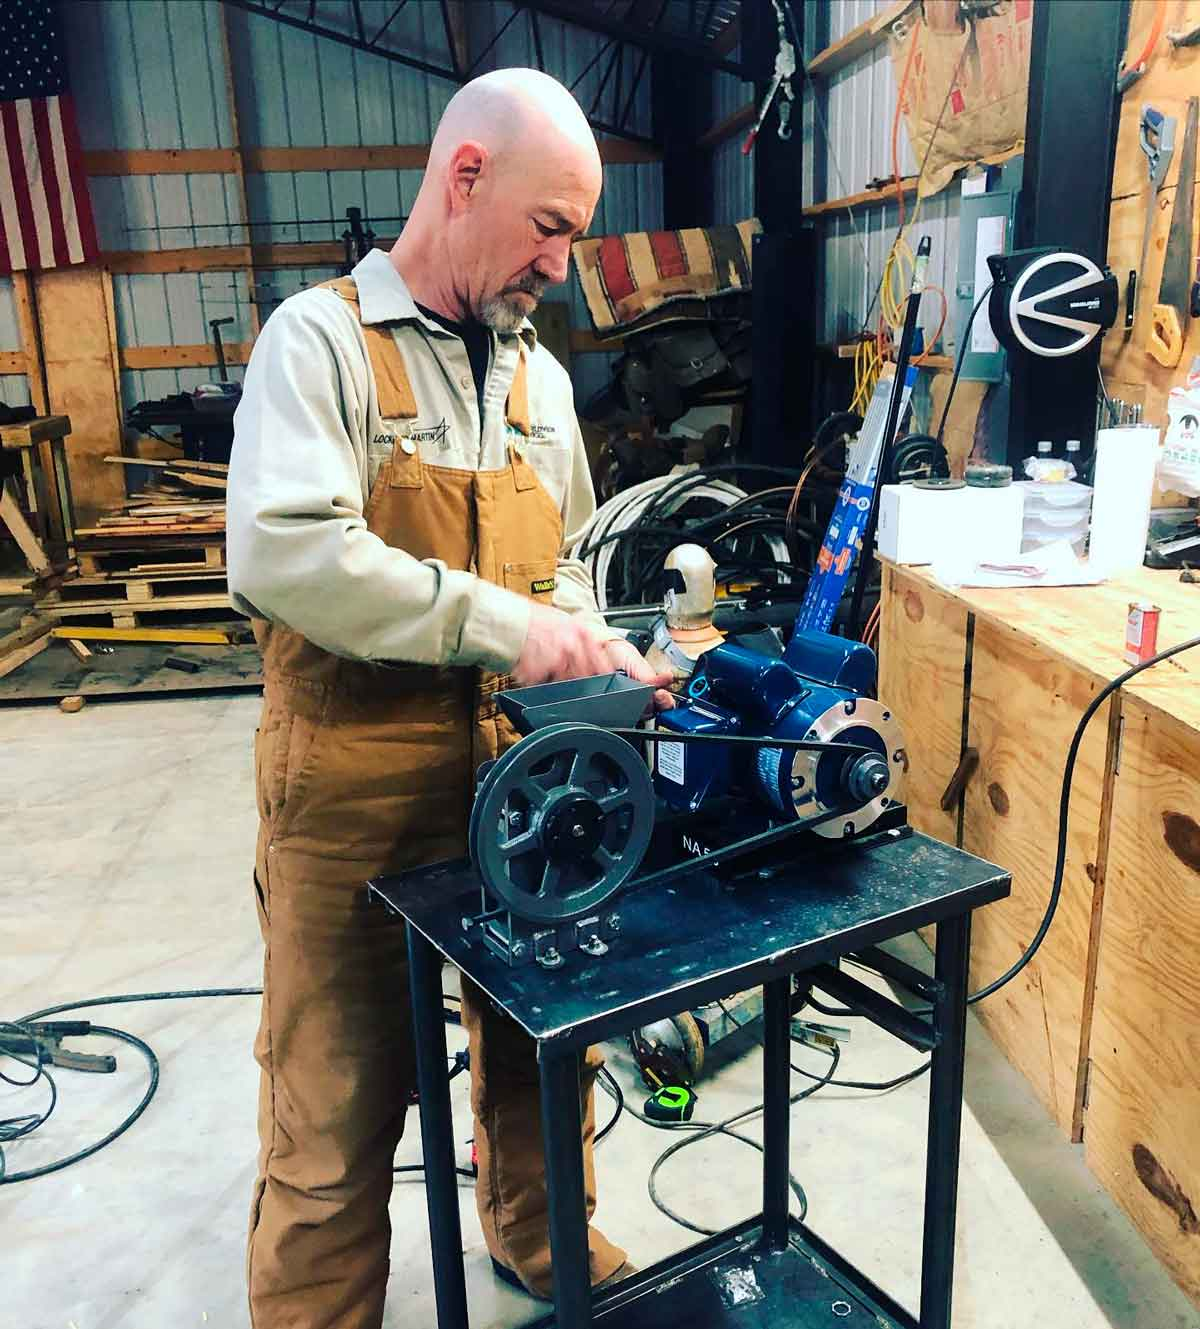 Rob putting the rock crusher together on the cart he fabricated from metal and pipe.